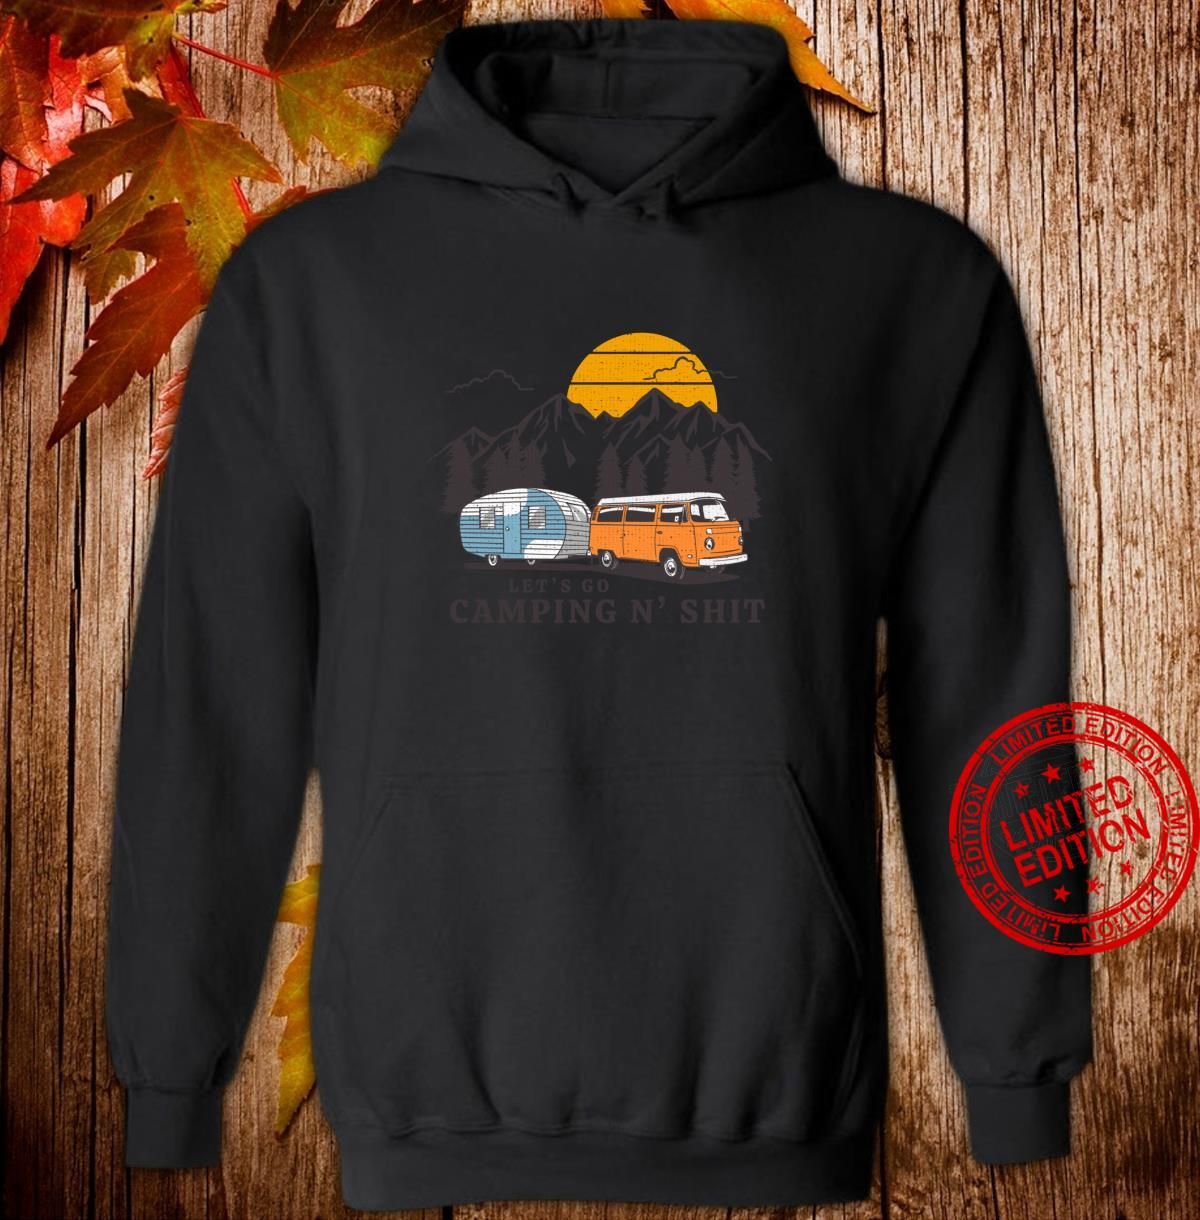 Funny Let's Go Camping N' Shit for Hiking Camper Van Life Shirt hoodie